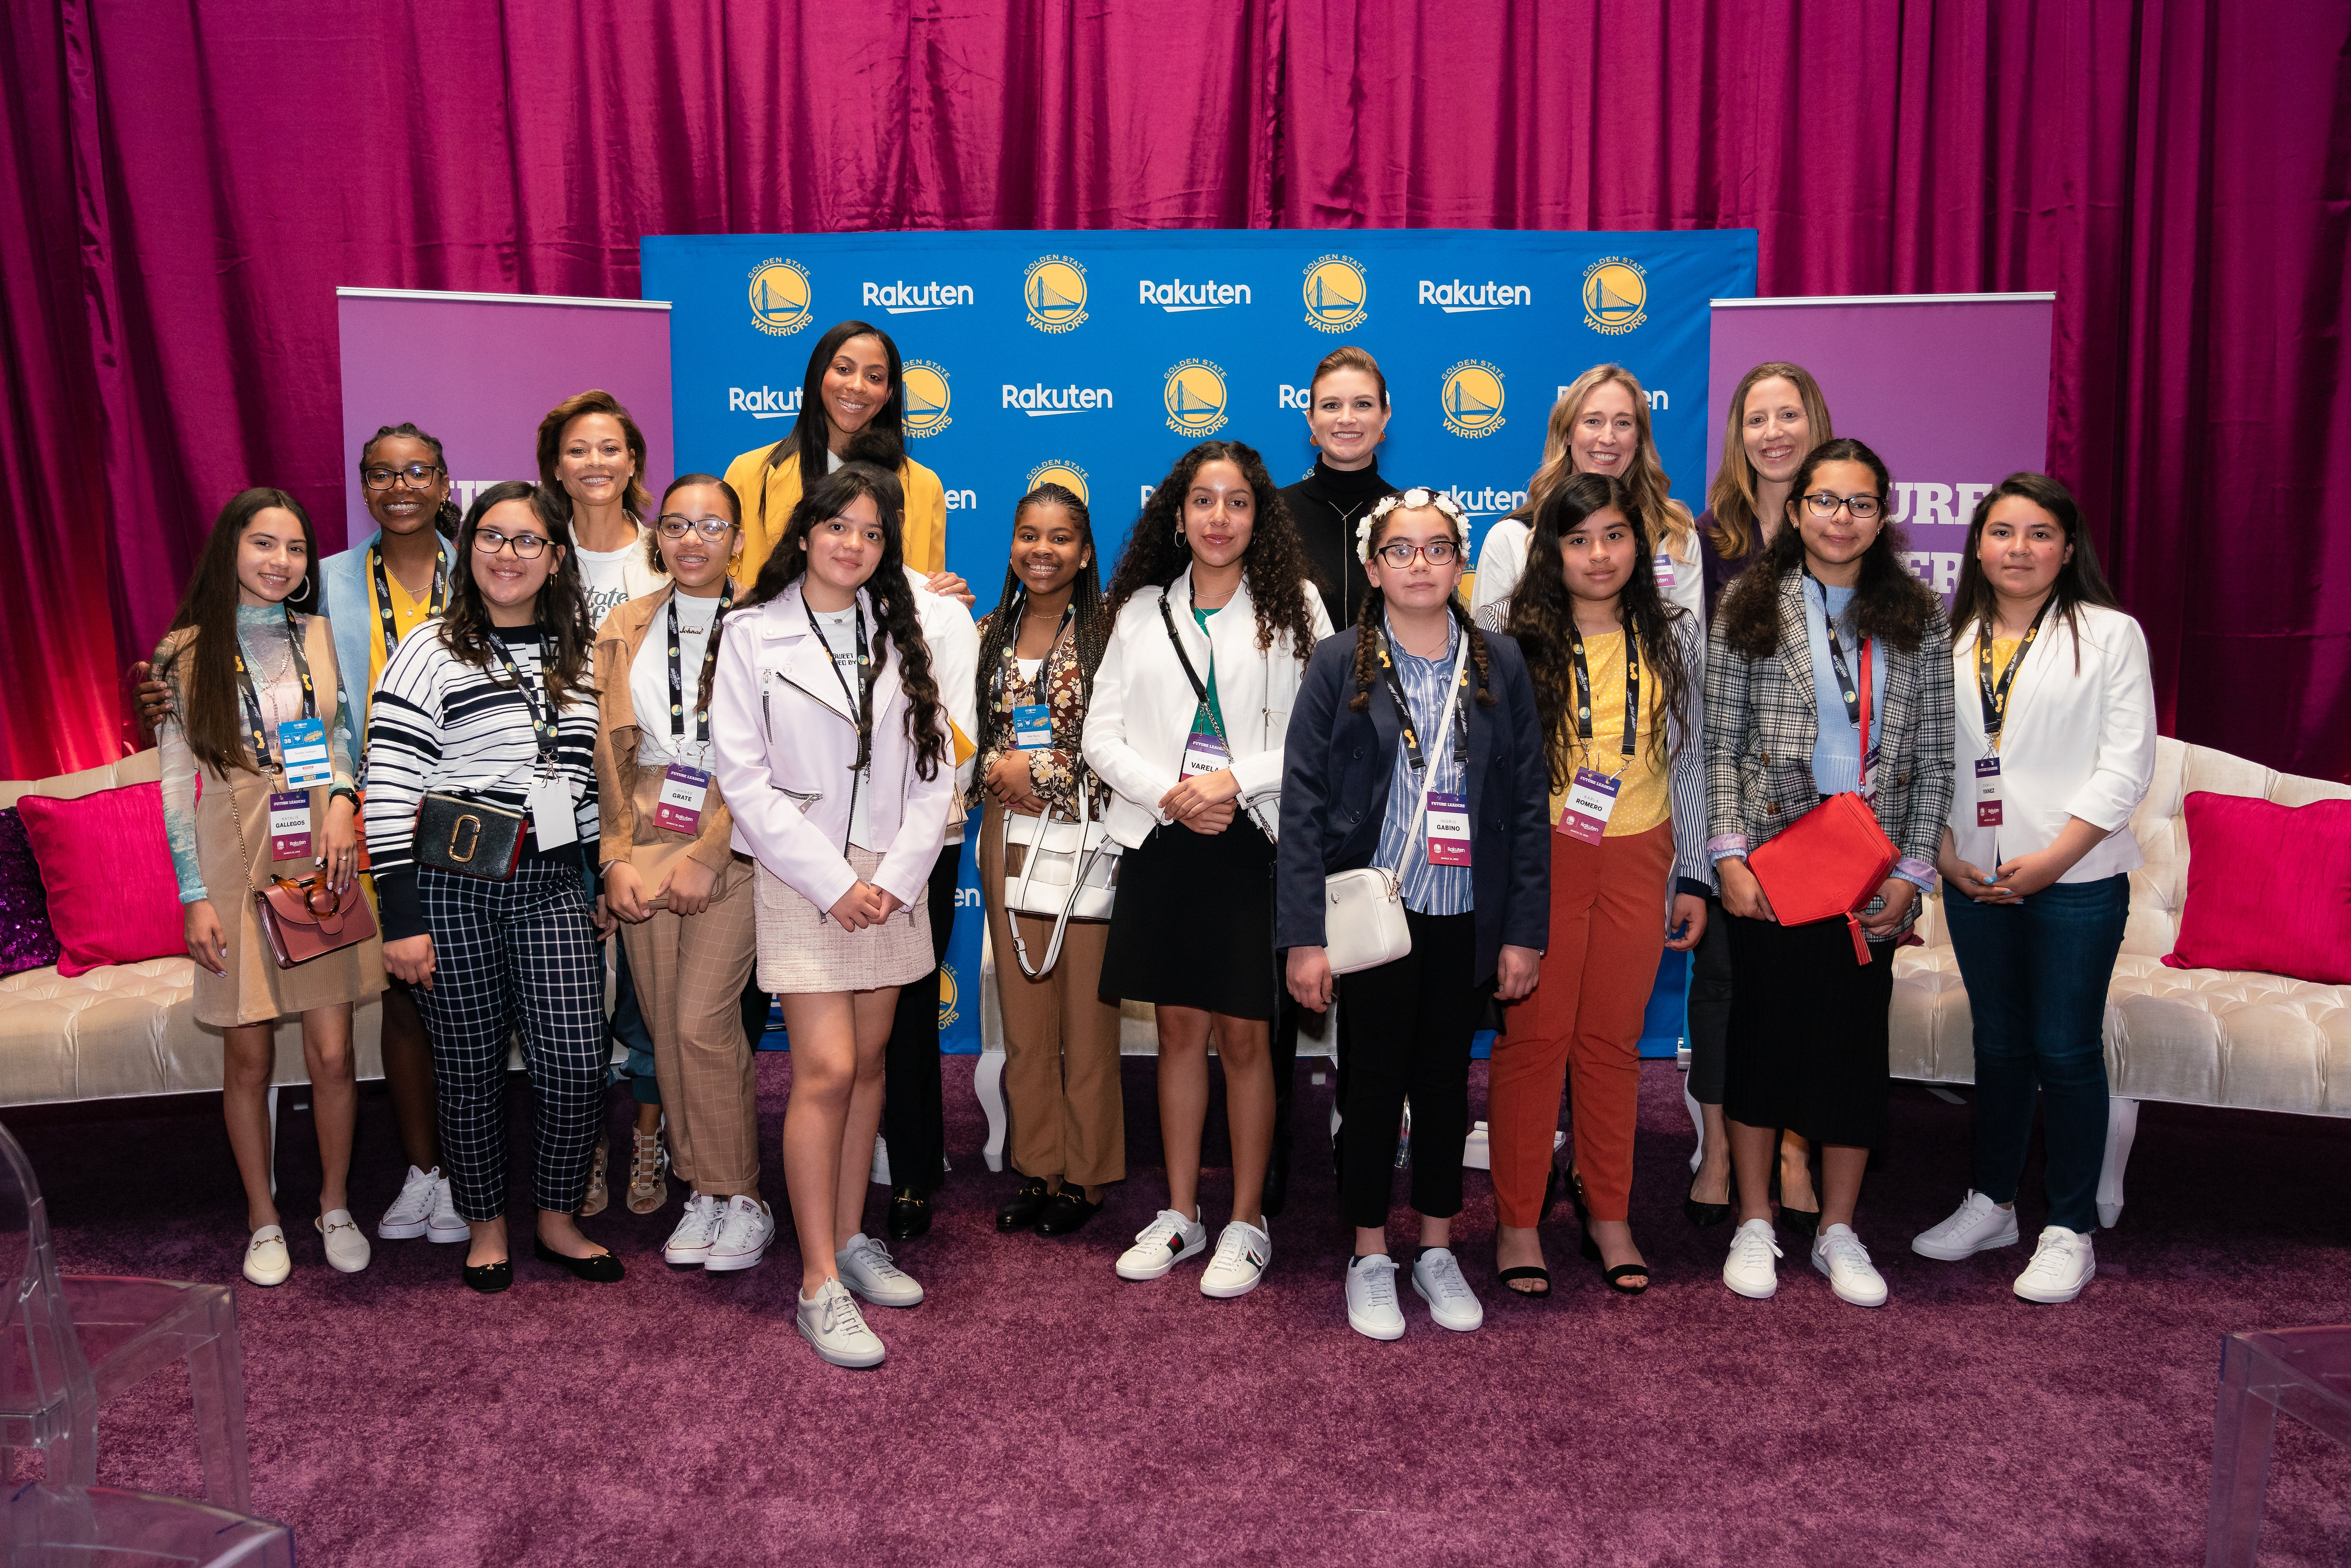 finest selection 80b01 477f3 Photos: Rakuten Future Leaders Experience | Golden State ...